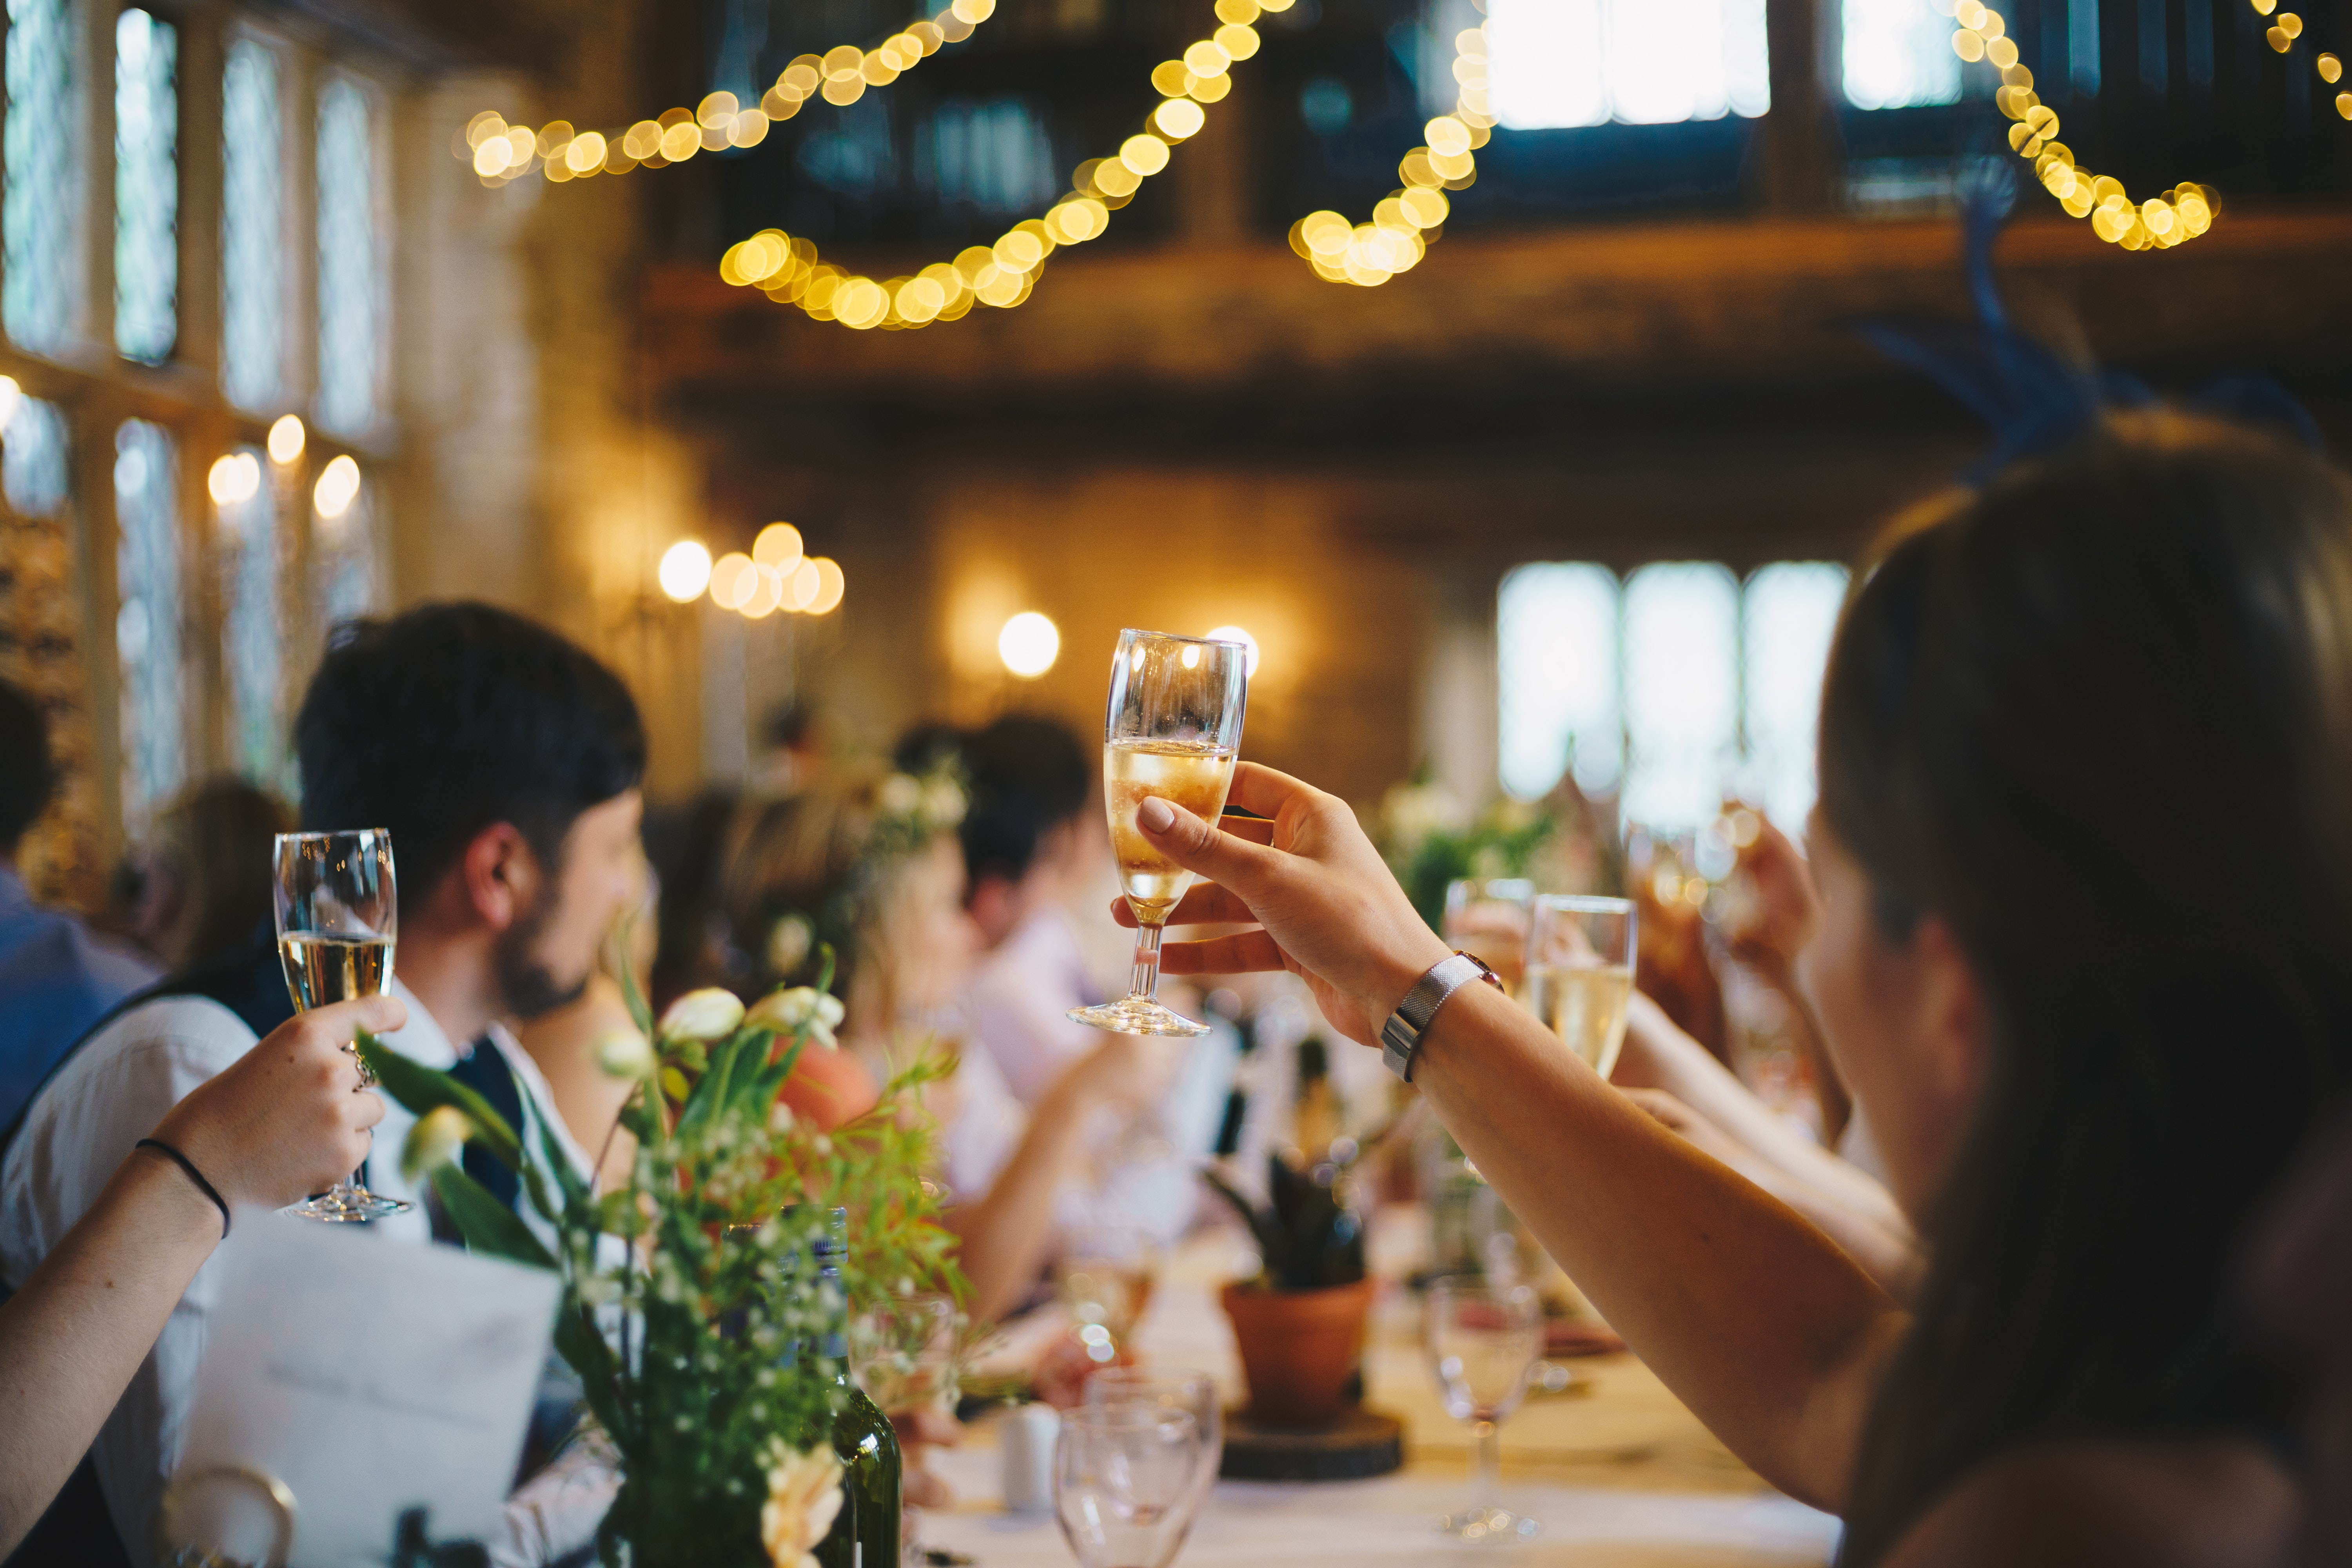 A wedding reception. People sitting around a table in the foreground. One raising a champagne glass for a toast.